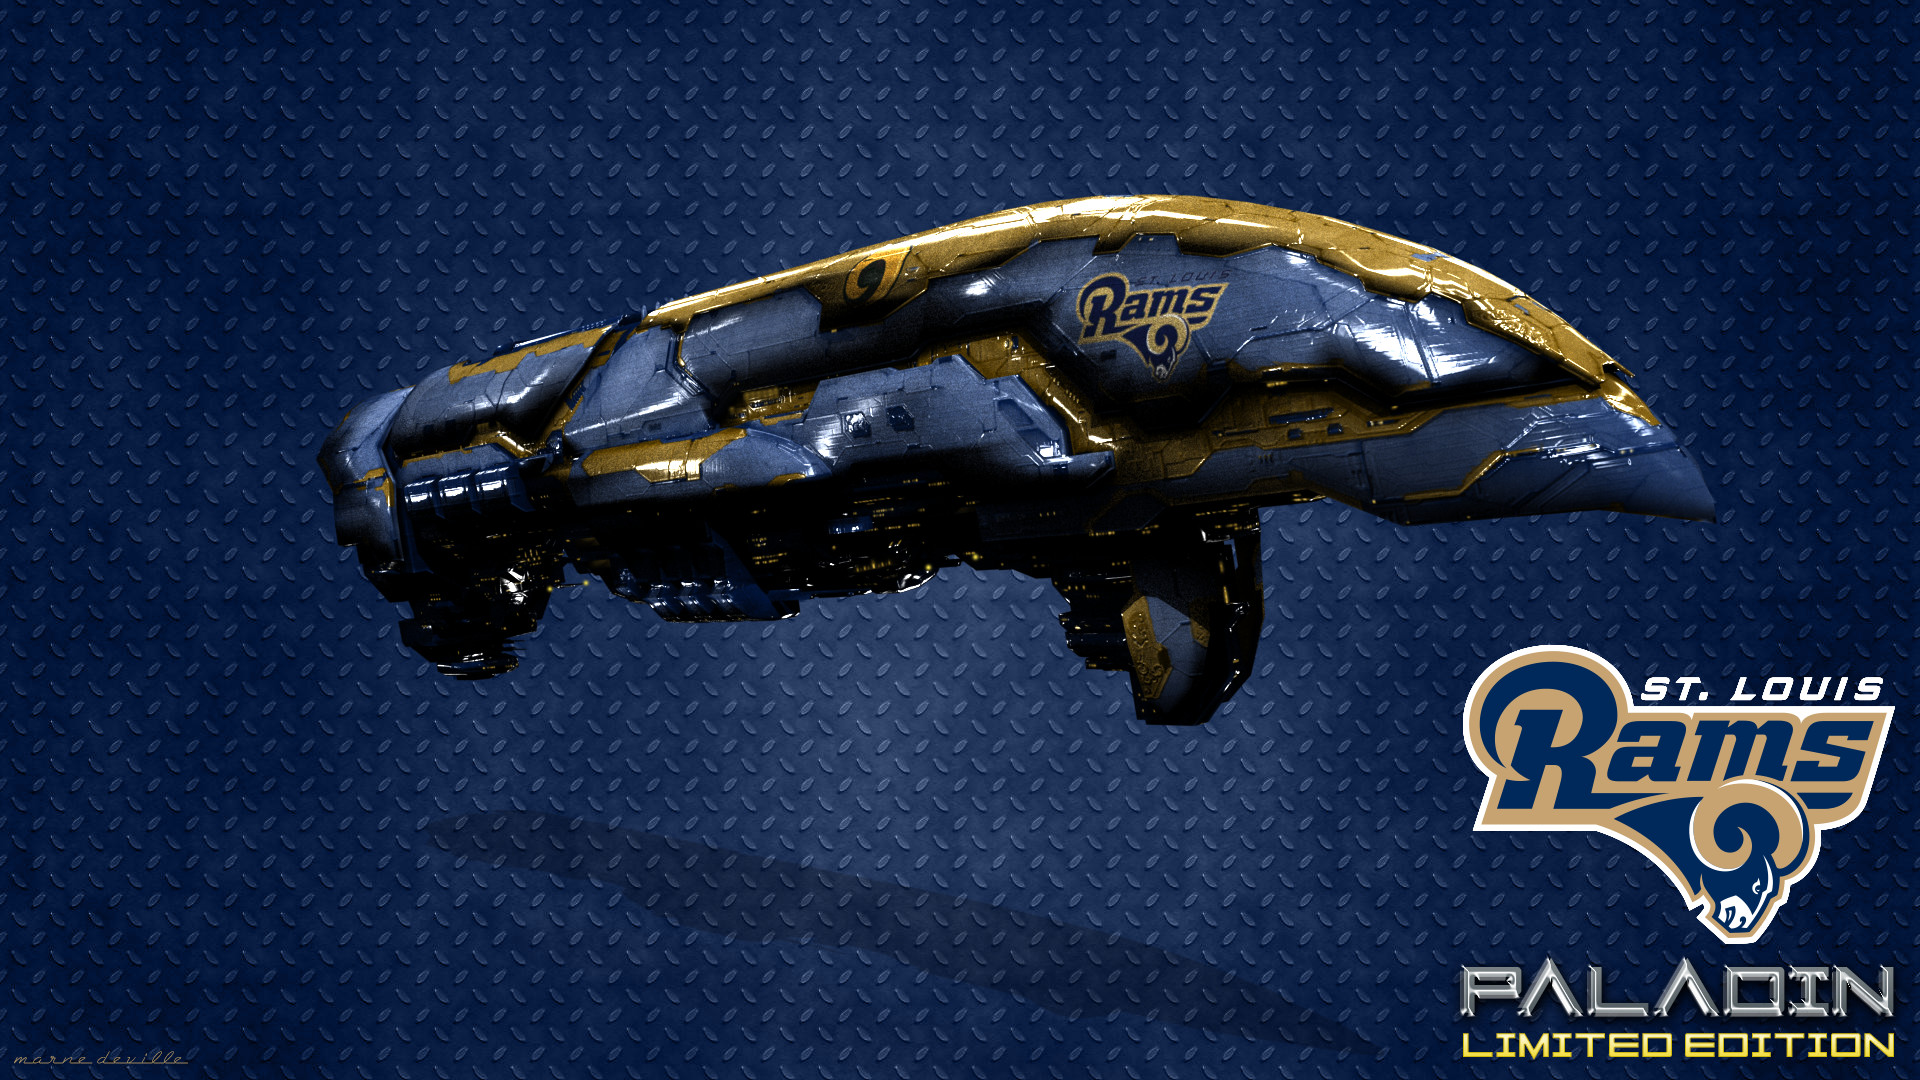 St Louis Rams 69480674 Wallpaper for Free | Nice 100% Quality HD Backgrounds